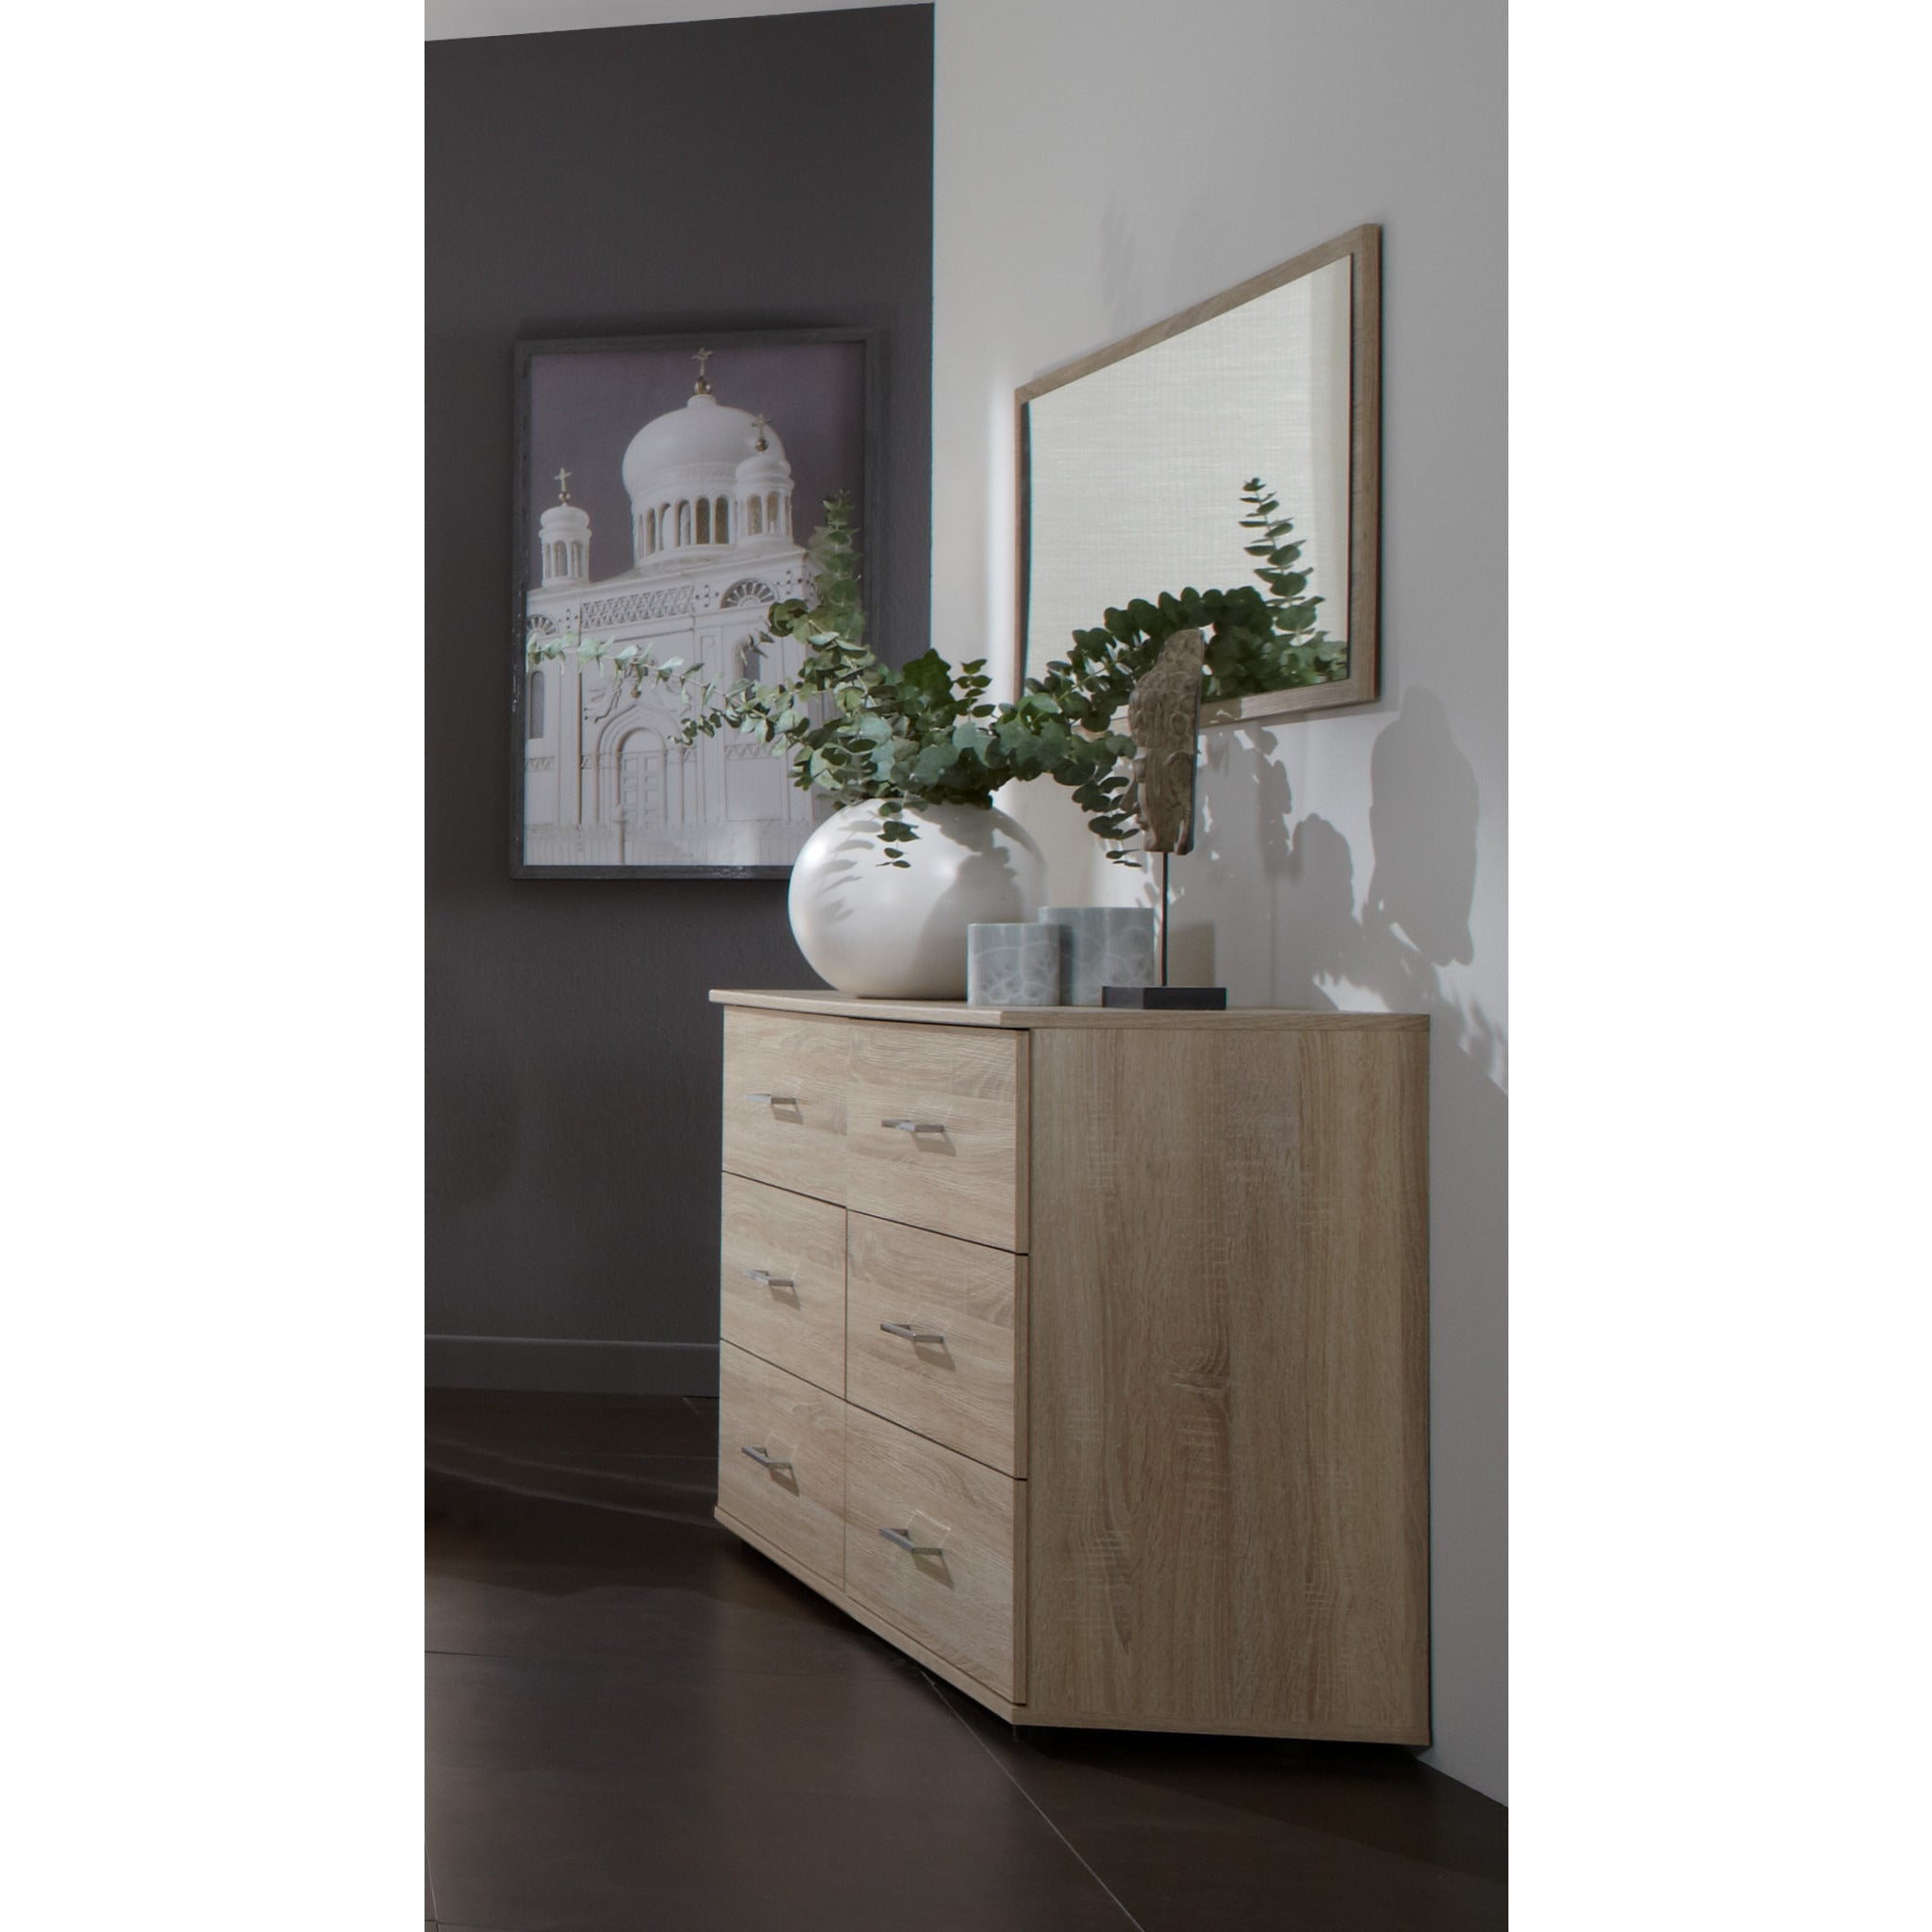 Qmax German Bedroom Furniture Matching City Range Chest Of